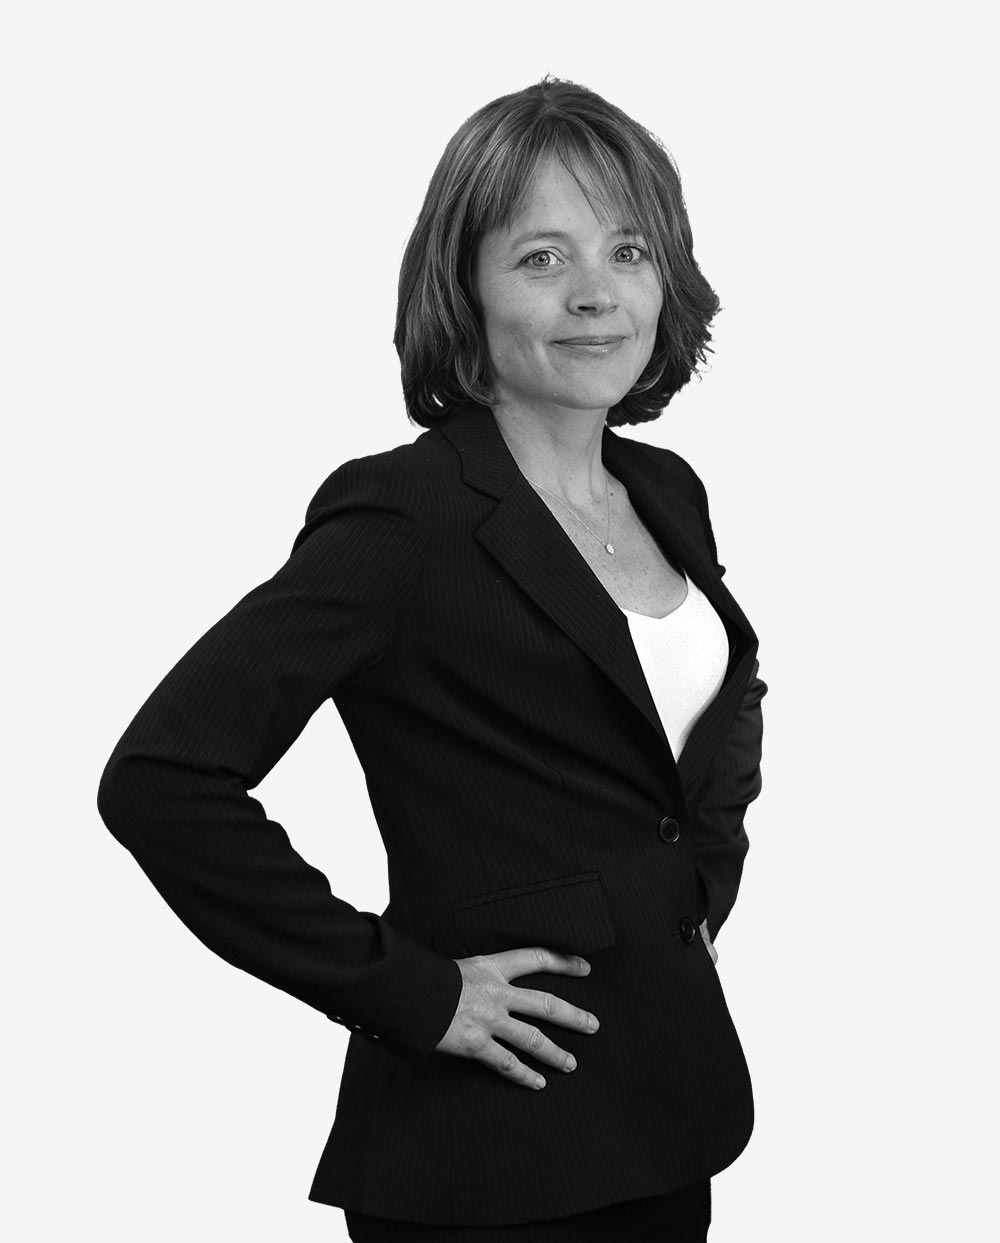 Me Marie-Pierre Charland, attorney | Team member of Barrette & Associates